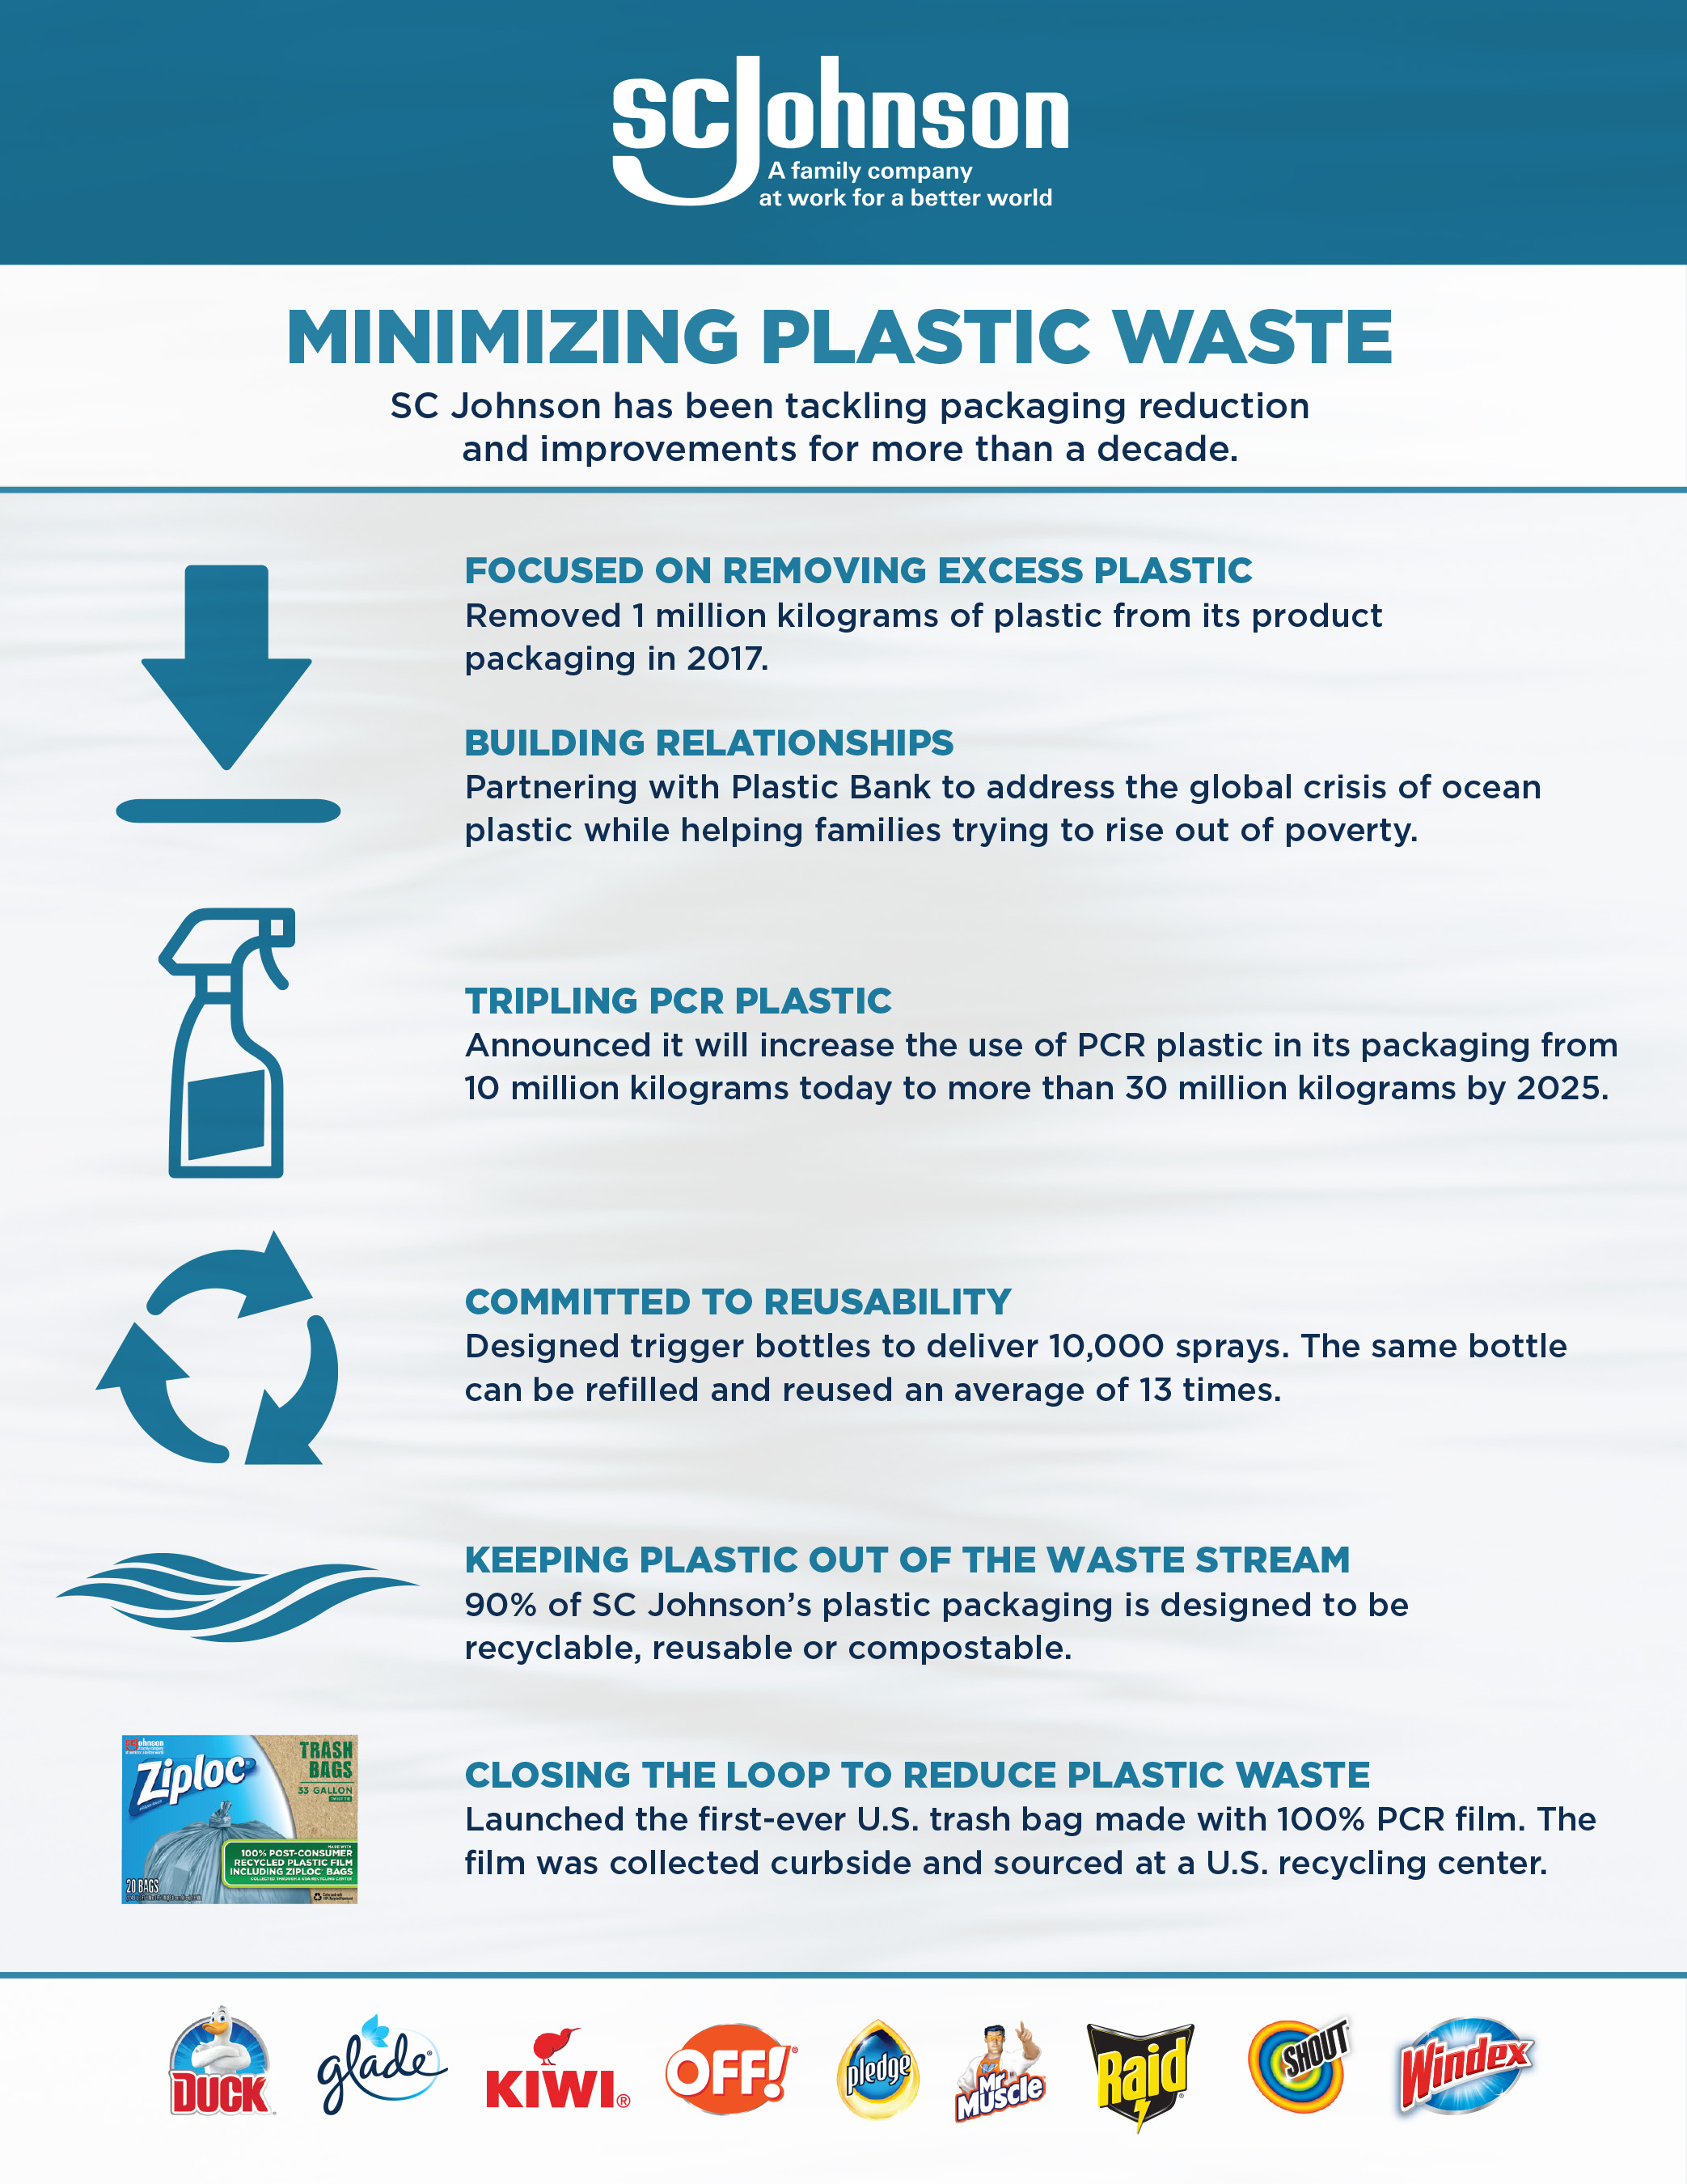 MINIMIZING PLASTIC WASTE: SC Johnson has been tackling packaging reduction  and improvements for more than a decade.